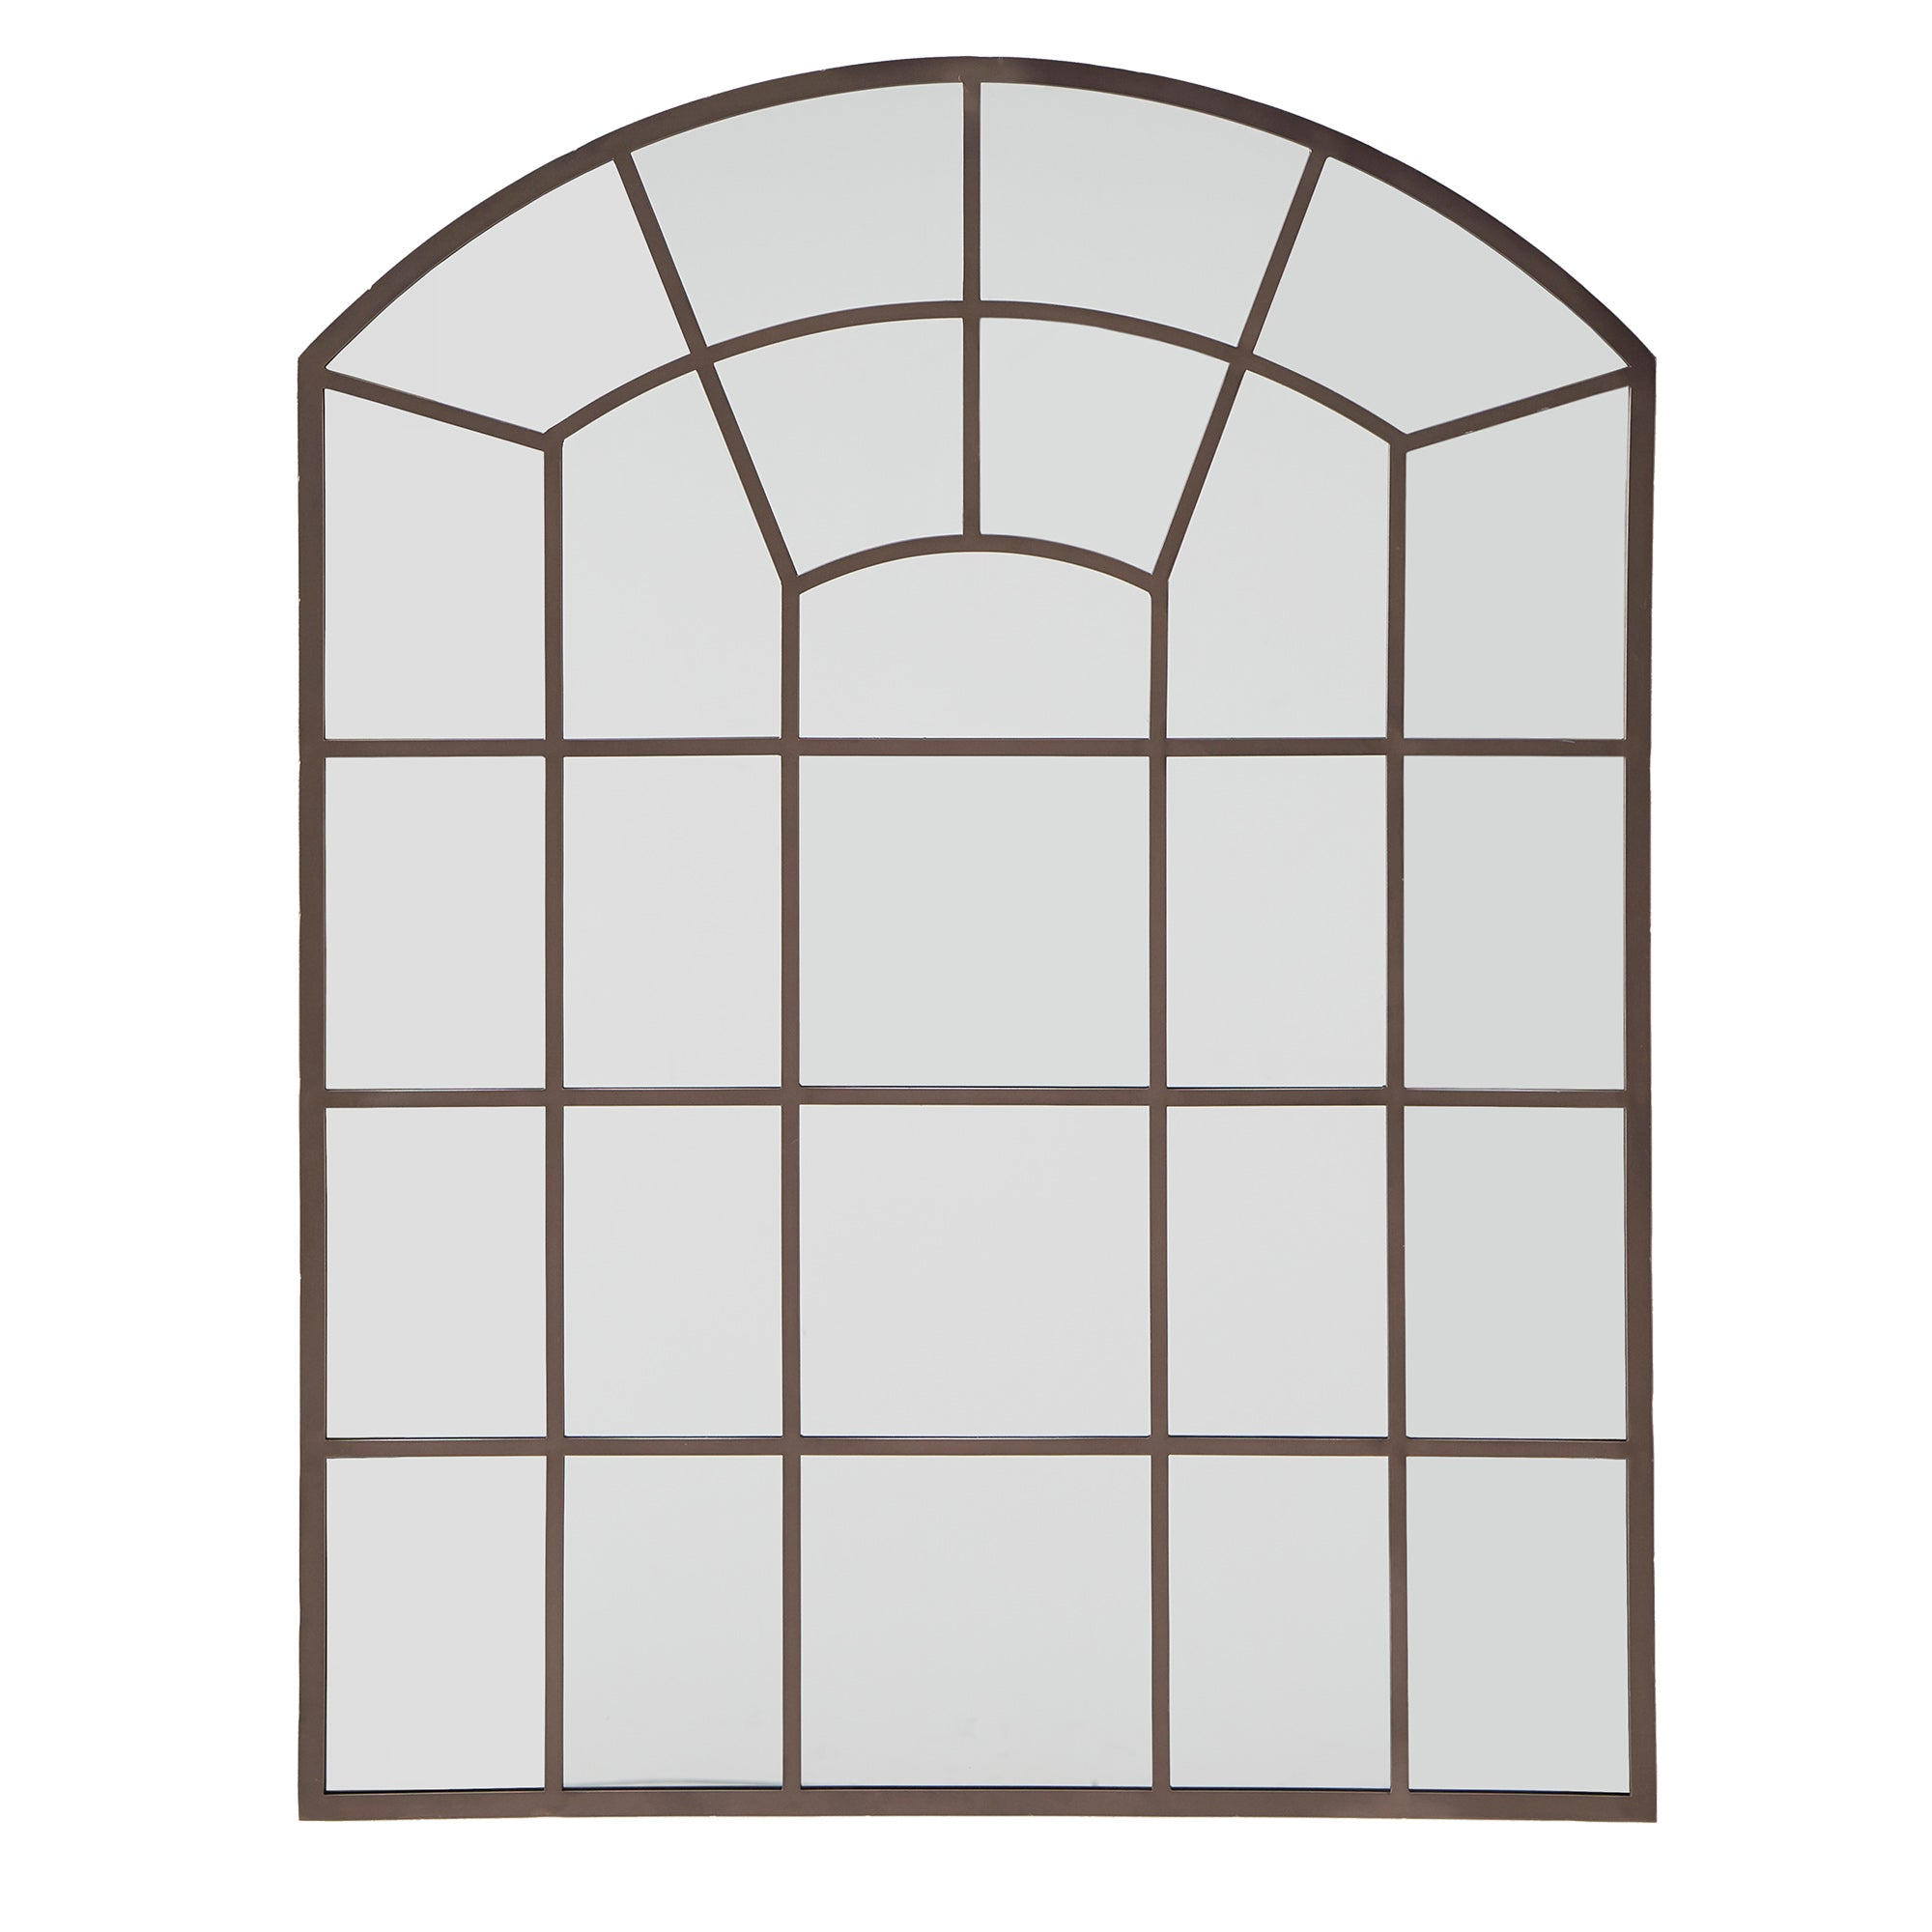 Metal Arched Windowpane Wall Mirror - Bronze Finish